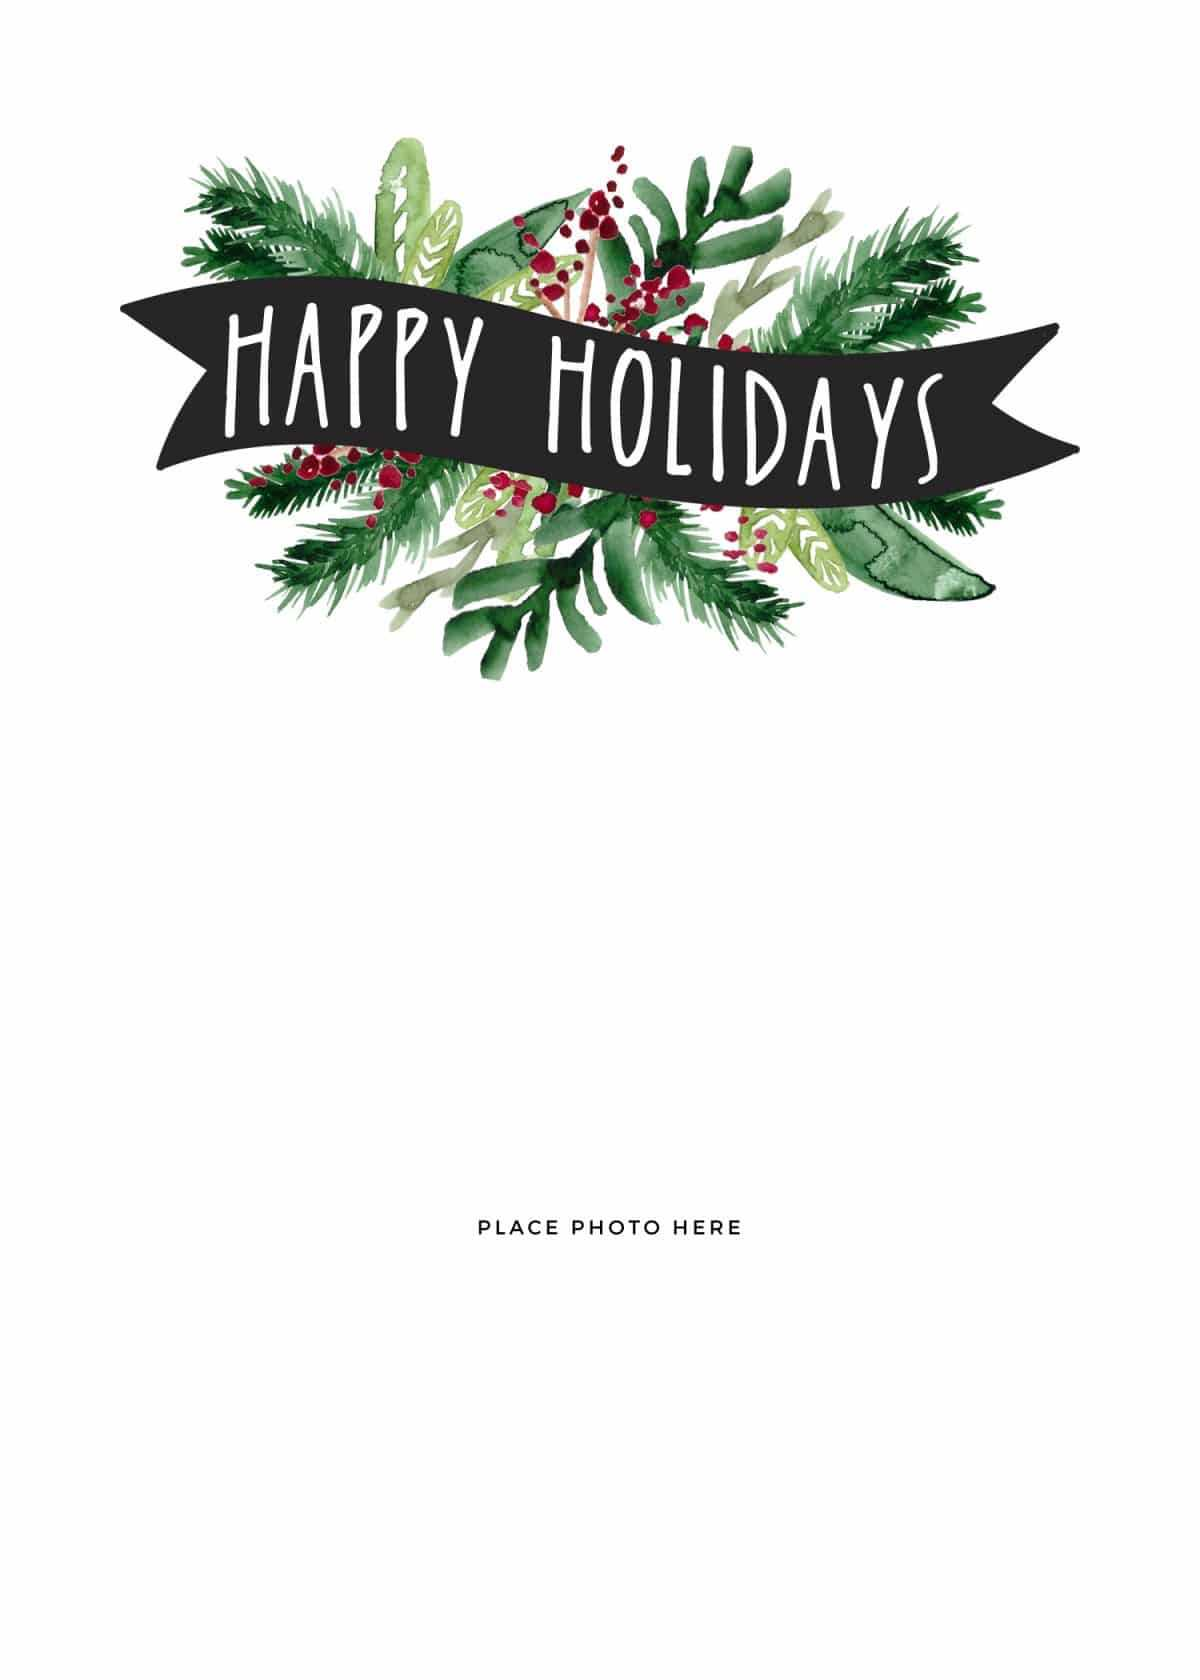 Make Your Own Photo Christmas Cards (For Free!) - Somewhat Throughout Diy Christmas Card Templates